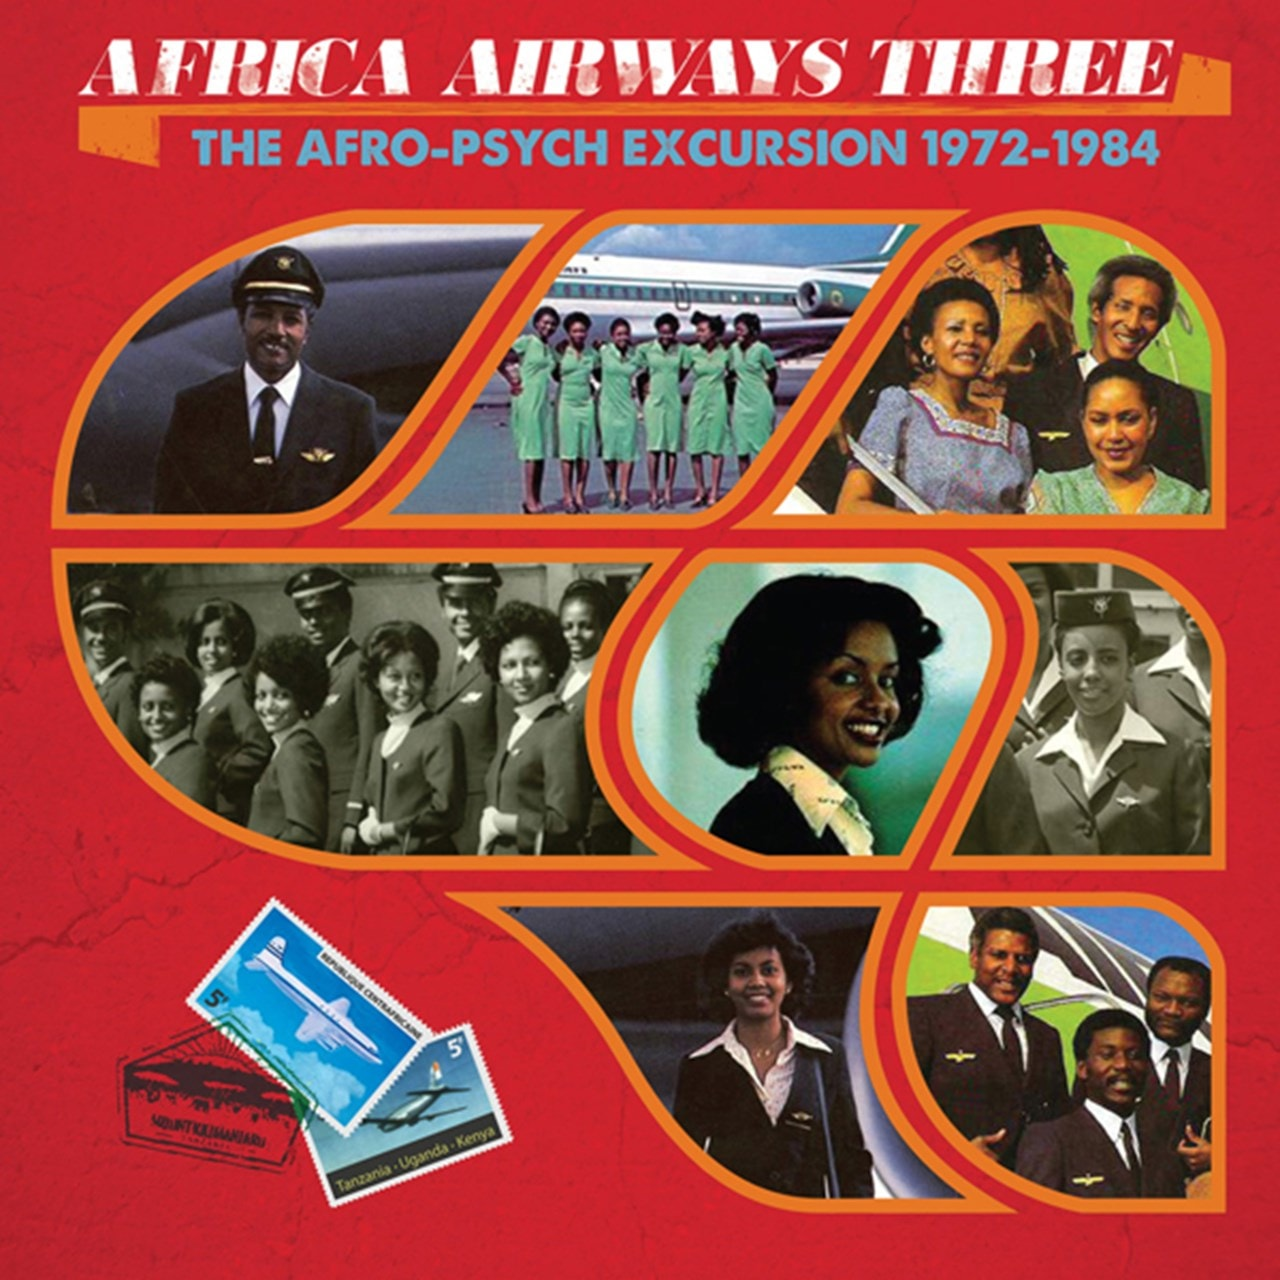 Africa Airways Three: The Afro-Psych Excursion 1972-1984 - 1